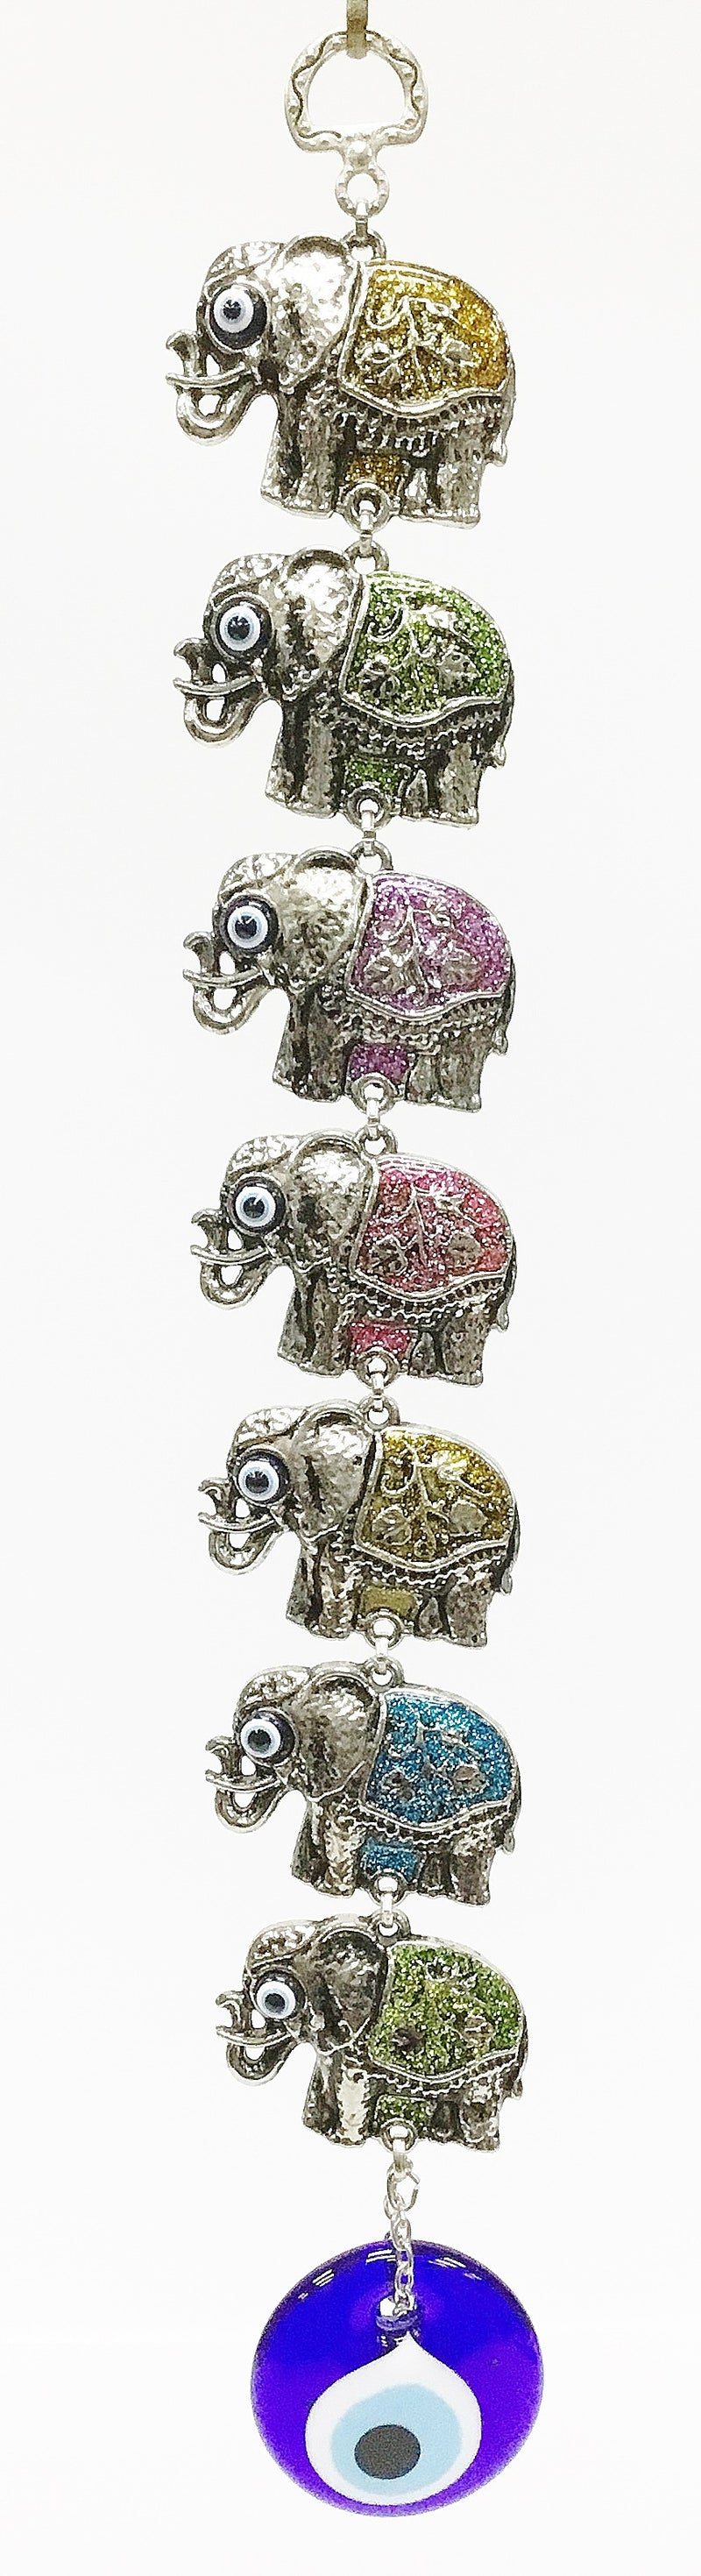 Elephant evil eye wall decor - Roxelana Designer Jewelry & Fine Gifts